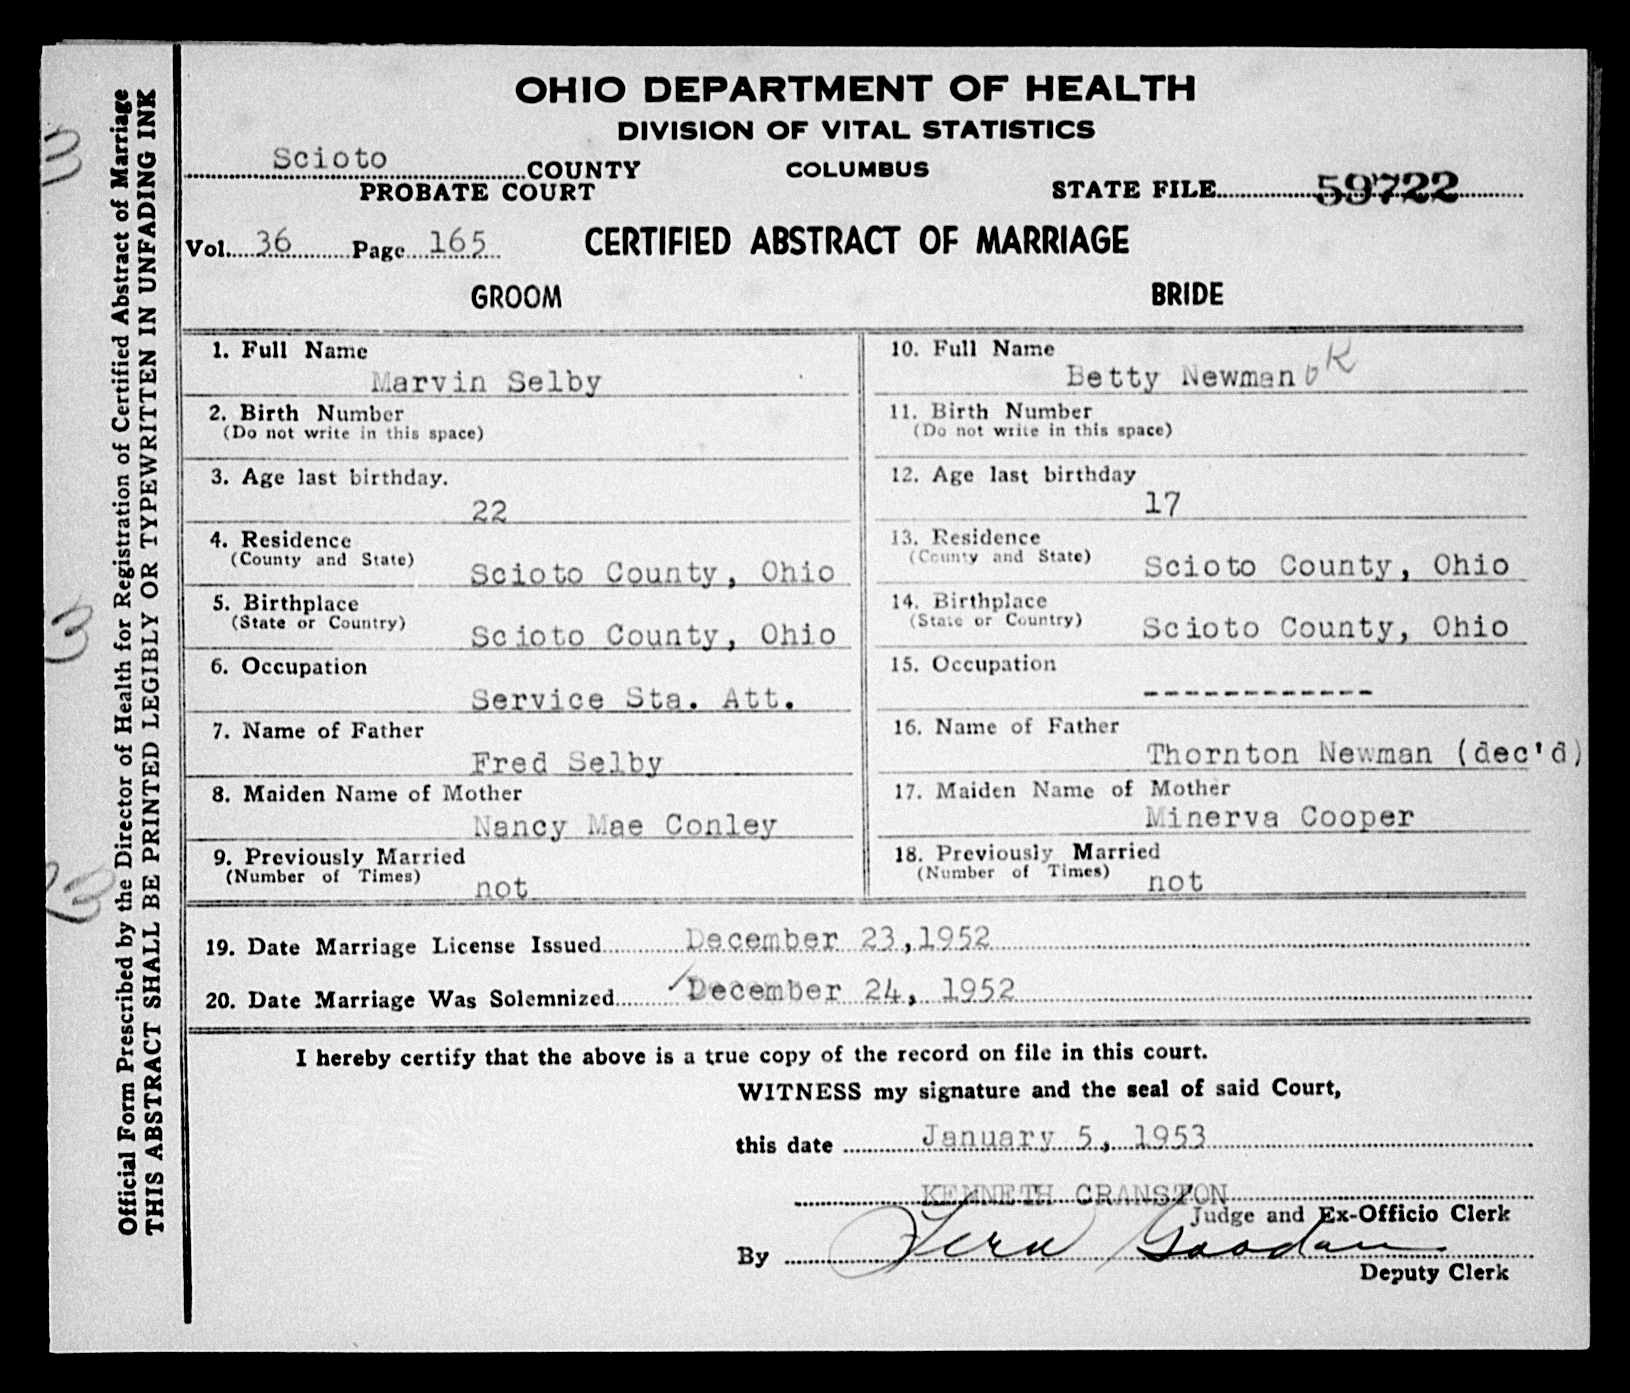 Nazdar digital genealogy archives relatives of the eicher family death certificate of husband 1965 minerva jewell cooper is the informant on the death certificate of william joseph martin aiddatafo Gallery